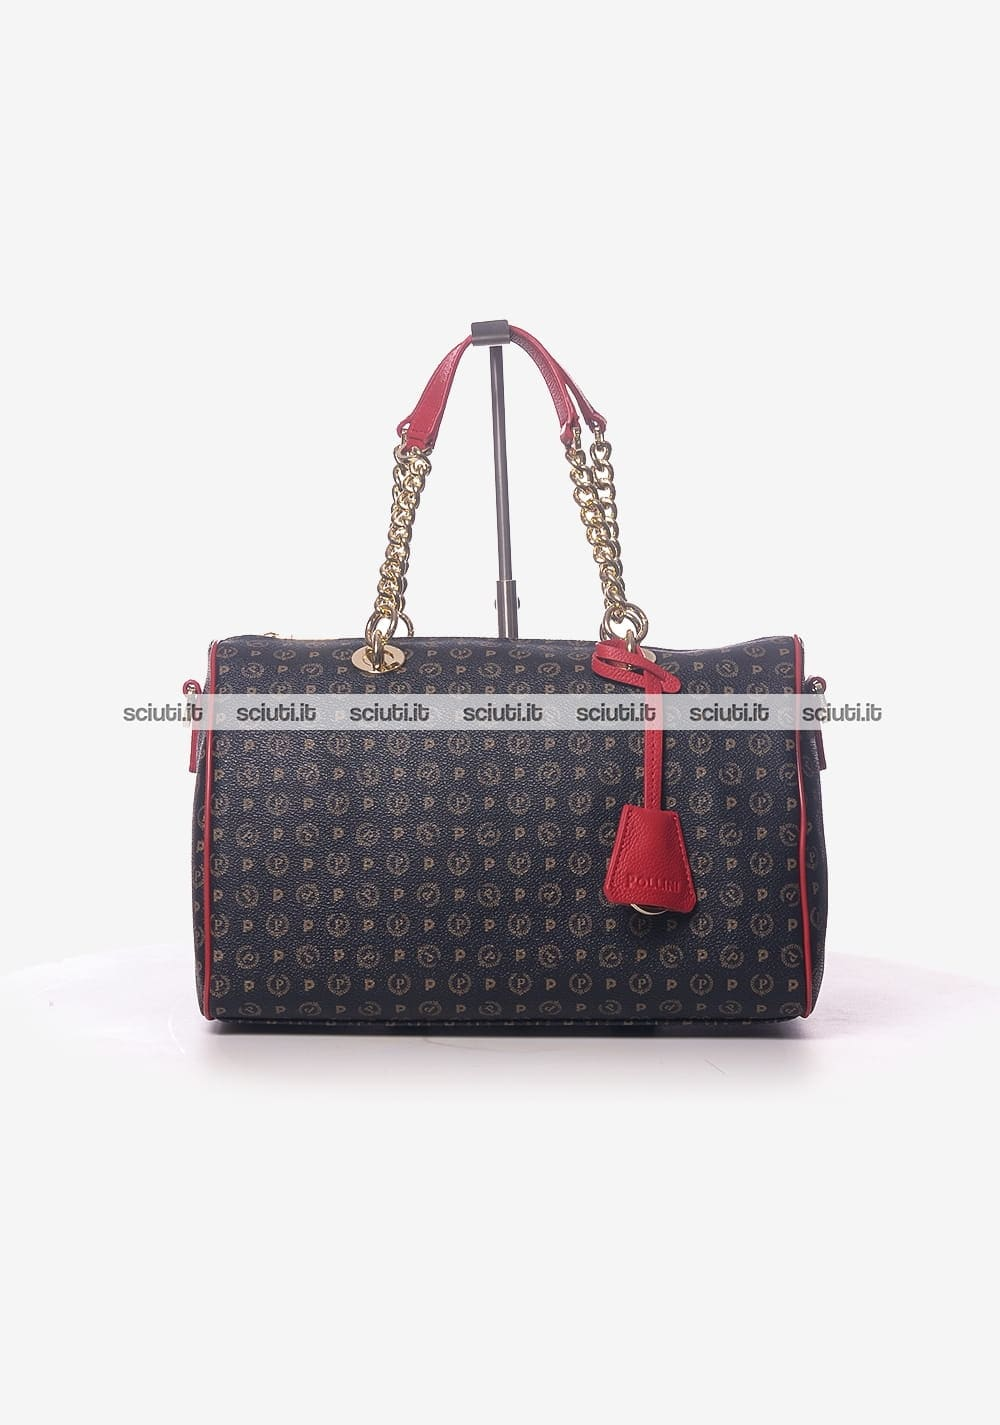 Borsa bauletto Pollini Heritage donna logo all over rosso